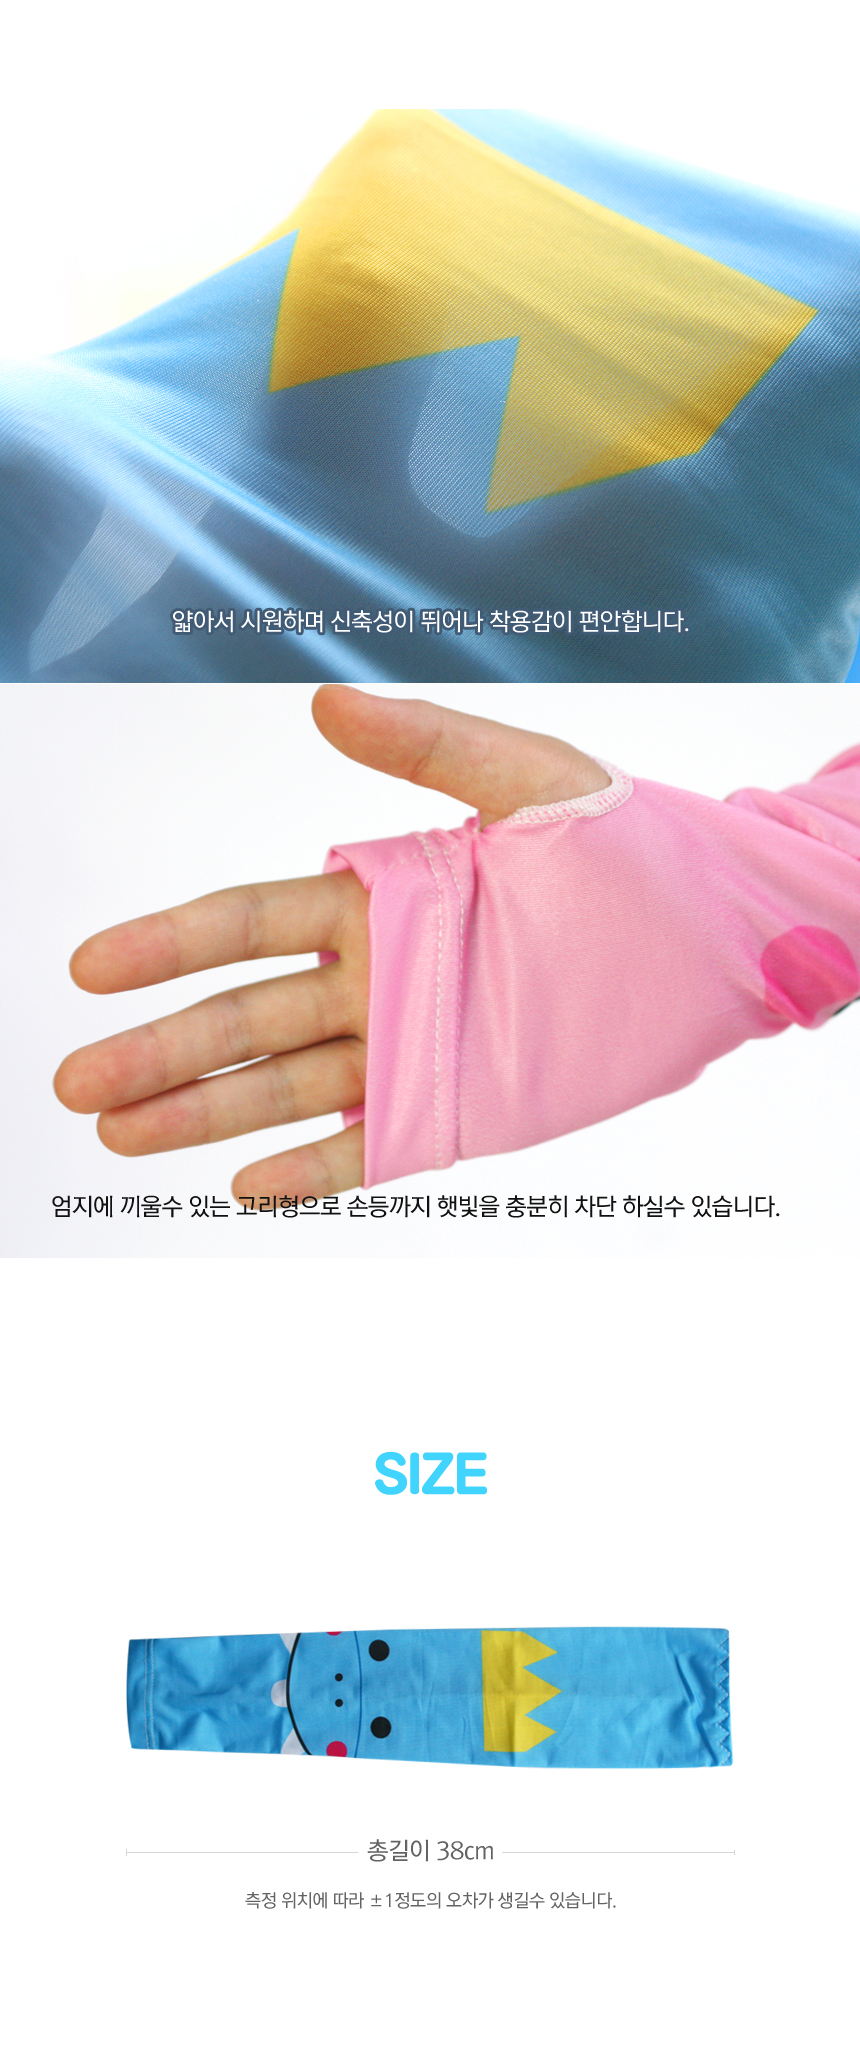 ice_sleeves_03.jpg